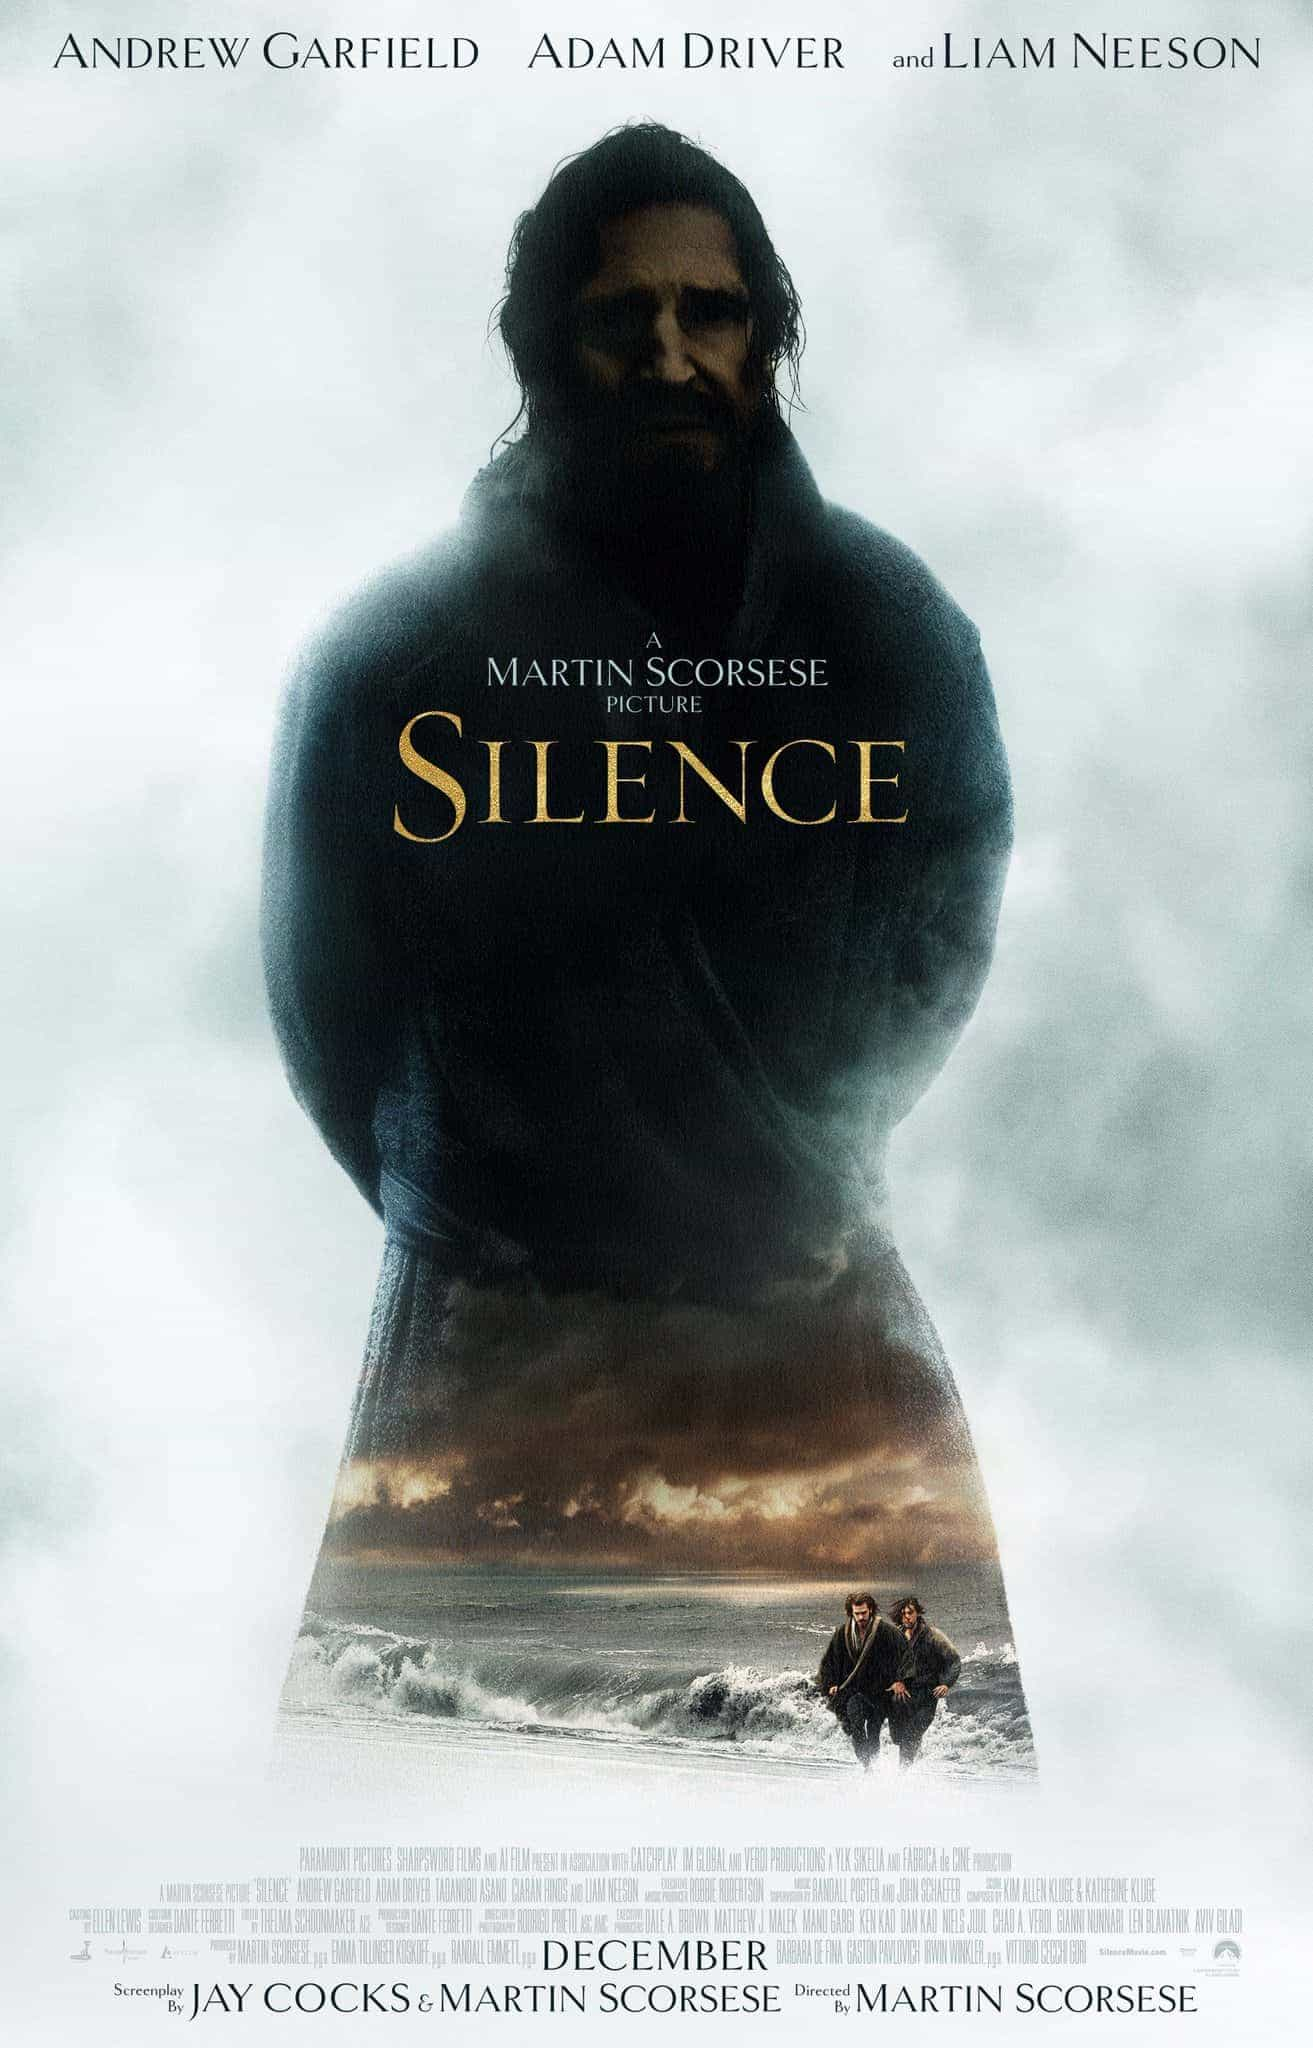 New poster for Silence directed by 